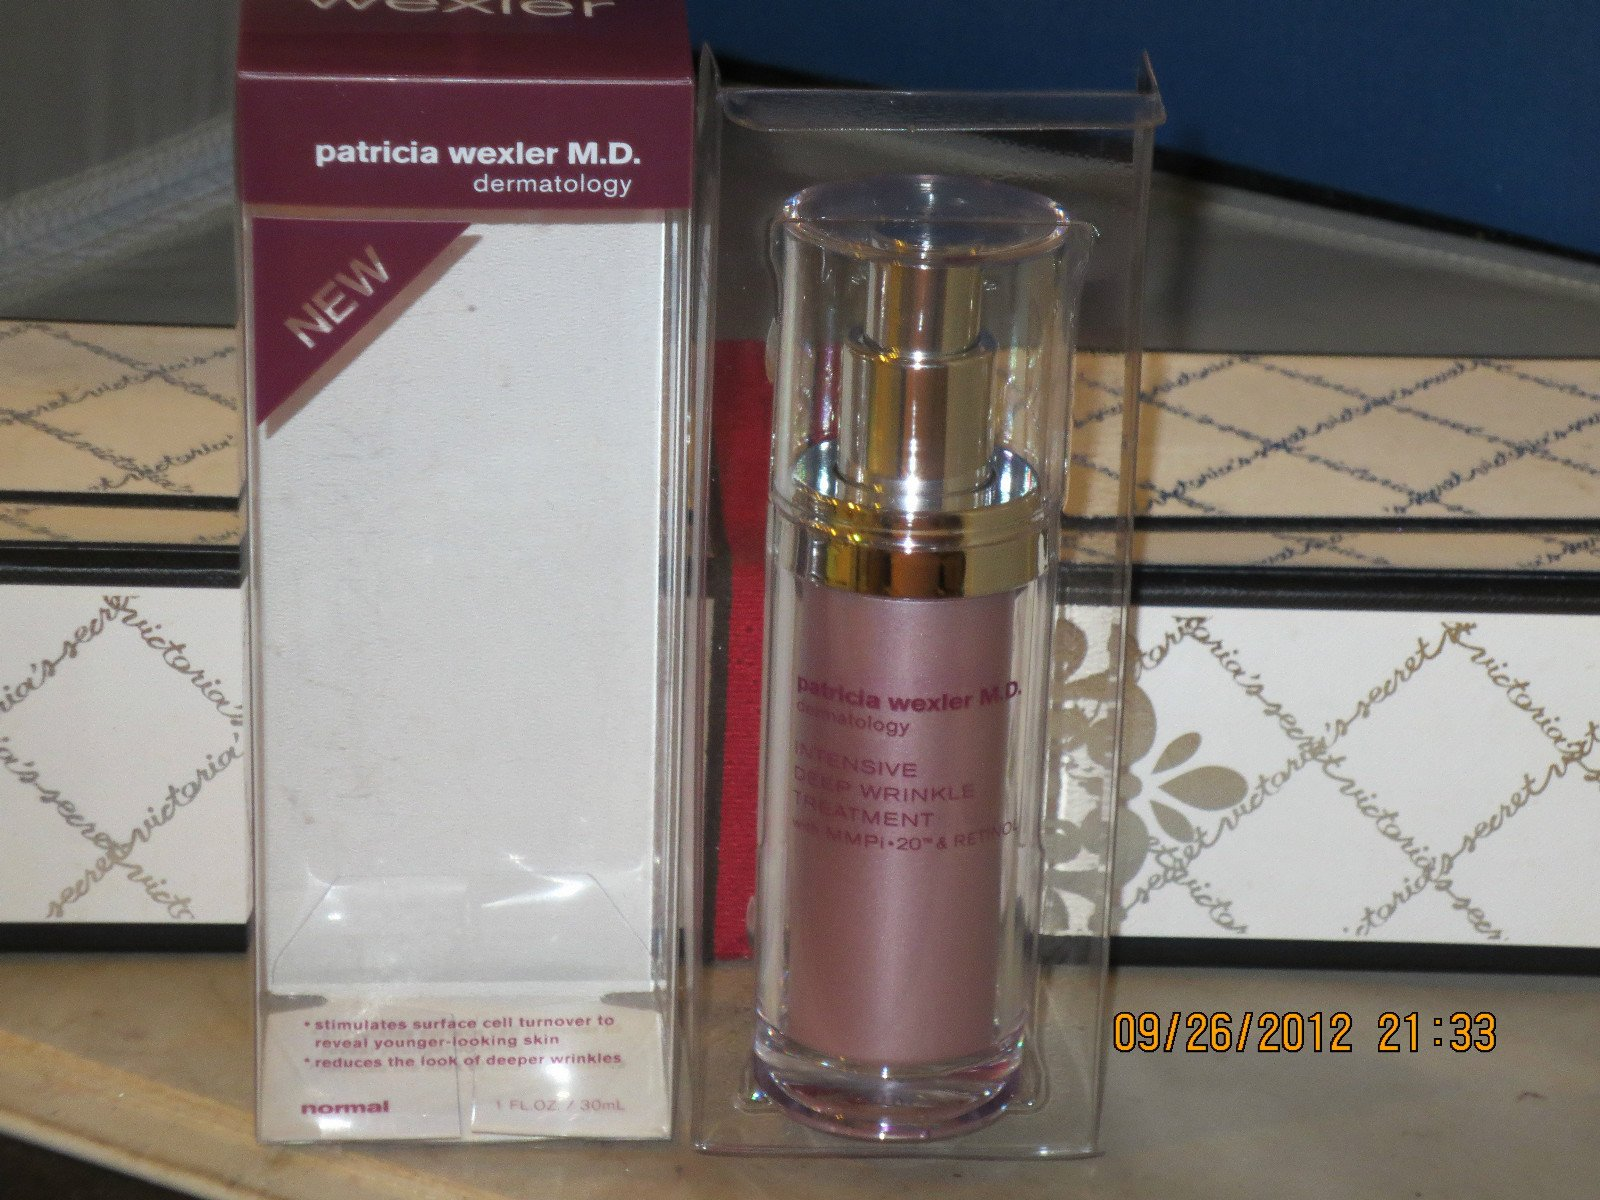 Bath & Body Works Patricia Wexler M.D. Intensive Deep Wrinkle Treatment with MMPi-20 and Retinol 1 fl oz (30 mil)